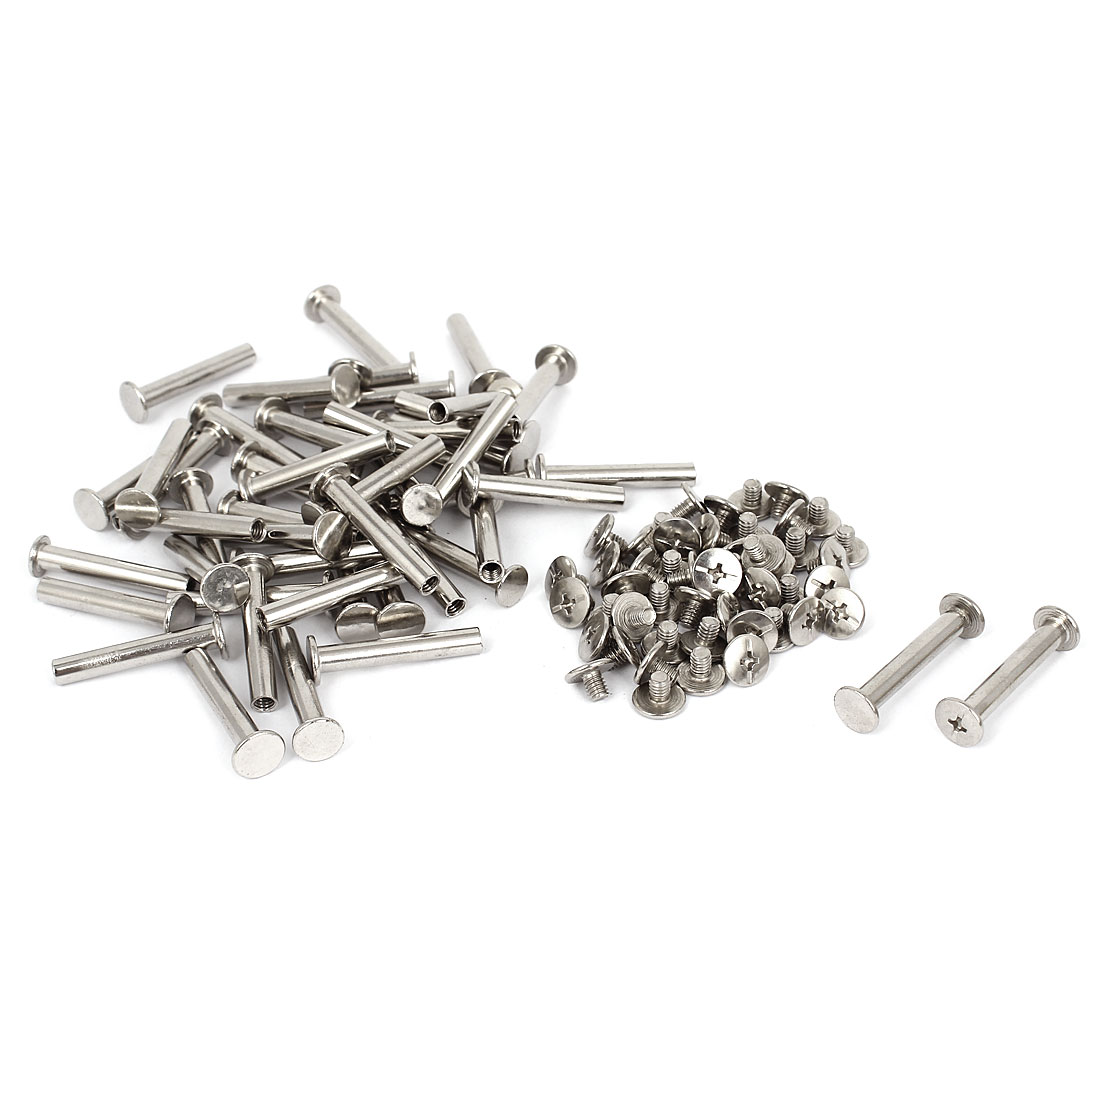 5mmx30mm Nickel Plated Binding Screw Post 50pcs for Scrapbook Photo Albums